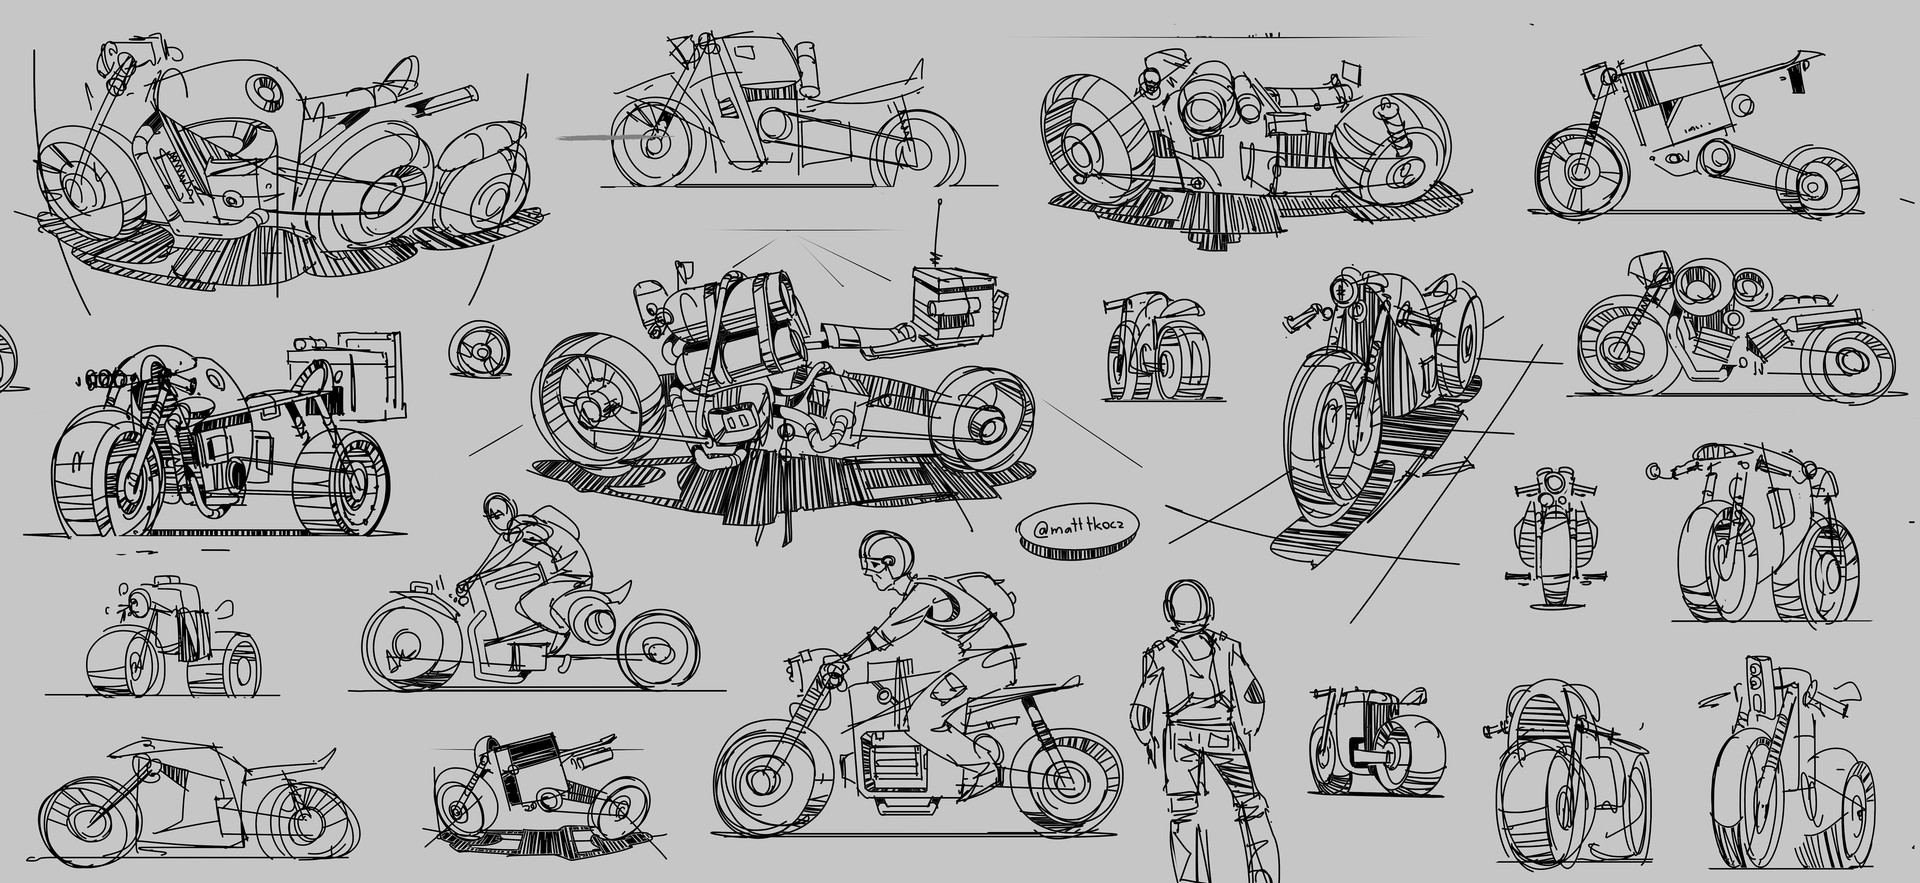 Matt tkocz motorcycle sketches1 artstation